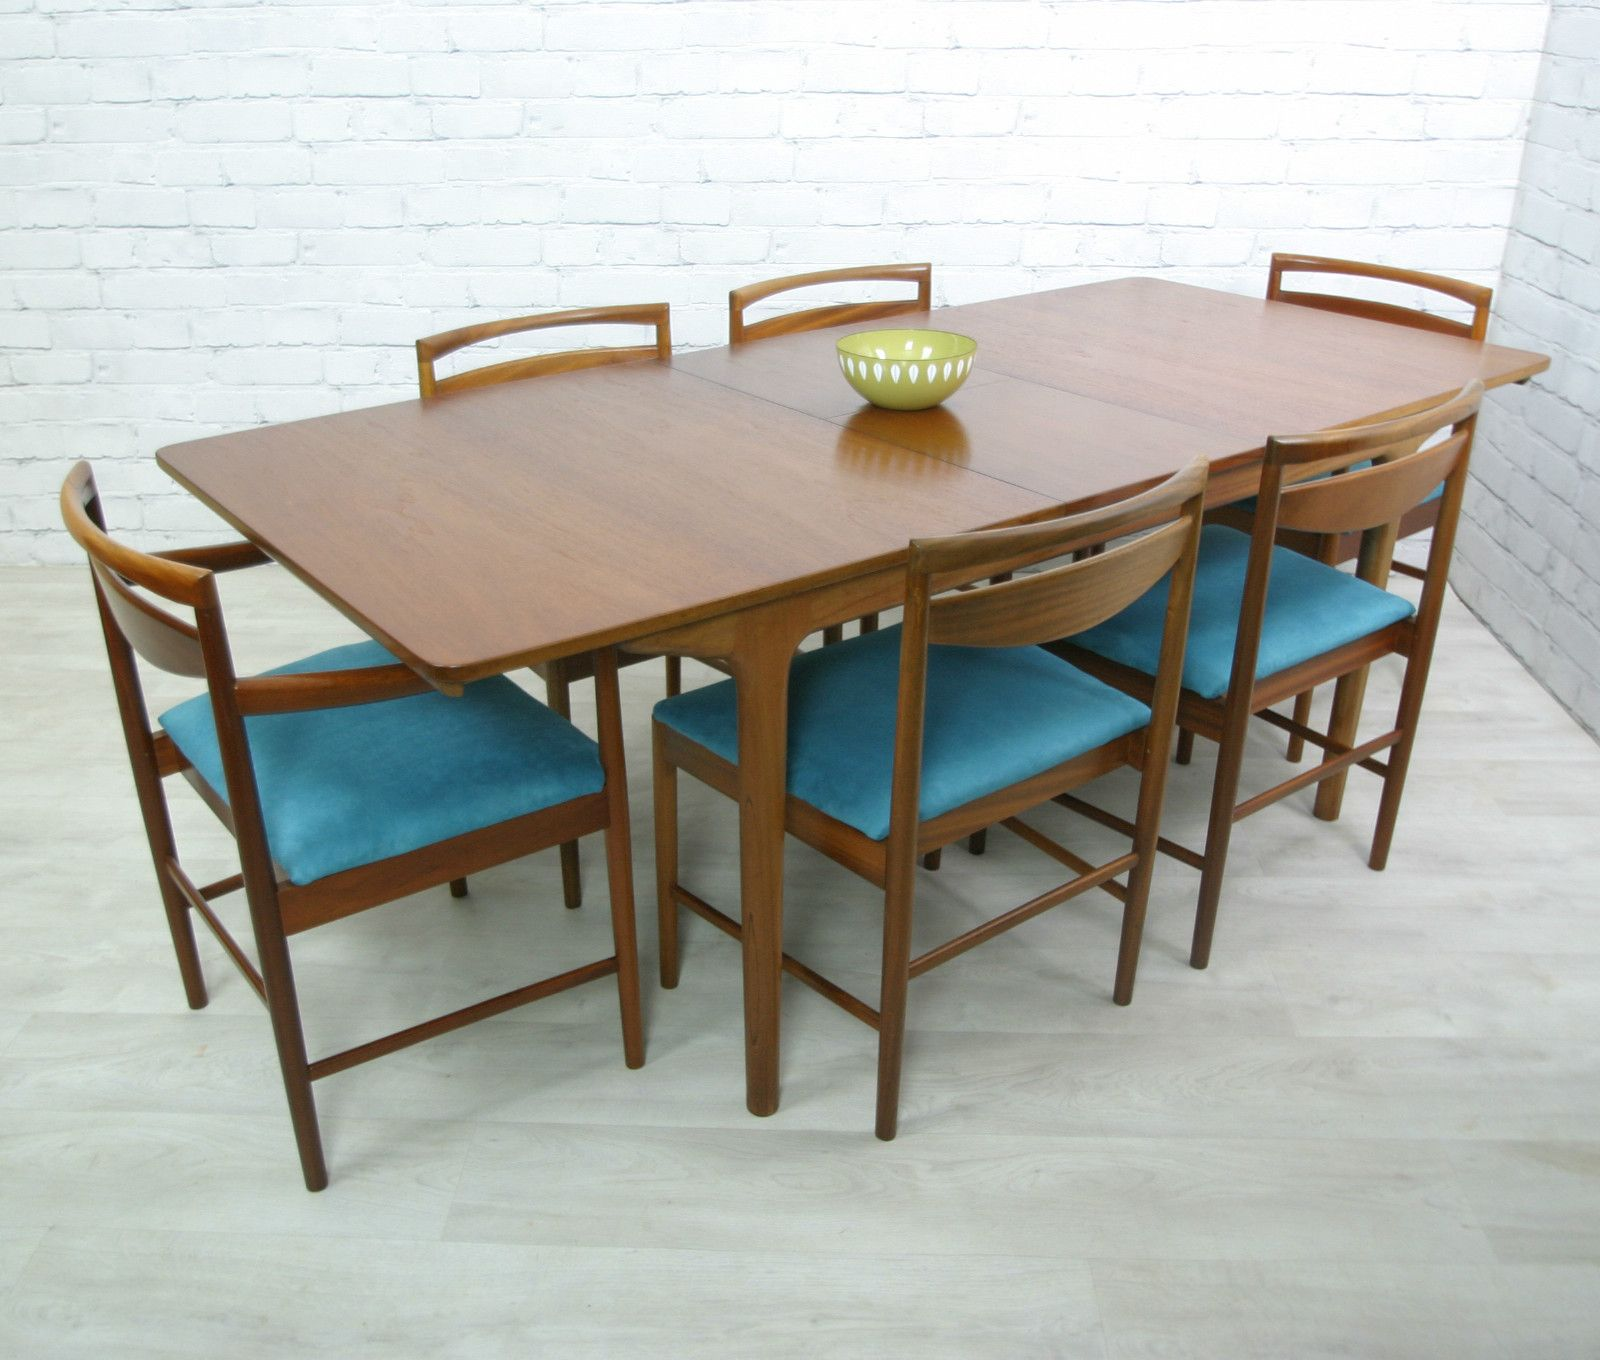 This Is My MeeMees Dining Table McINTOSH RETRO VINTAGE TEAK MID CENTURY DANISH STYLE DINING